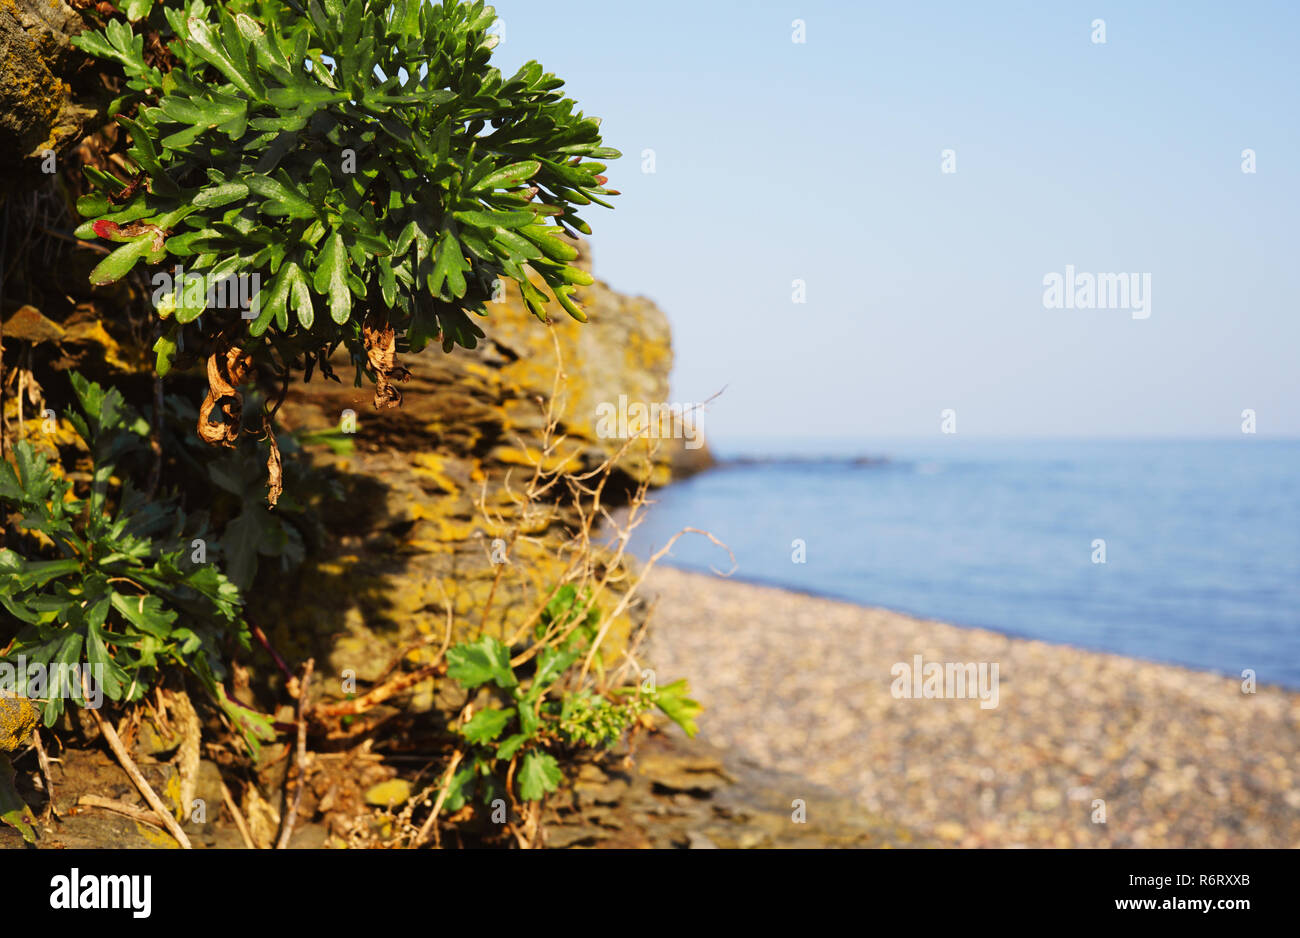 Green plants with leaves close up. Beautiful rocks in the background. Behind the cliffs is a seashore and blue water. The coastal zone in eastern Russ - Stock Image